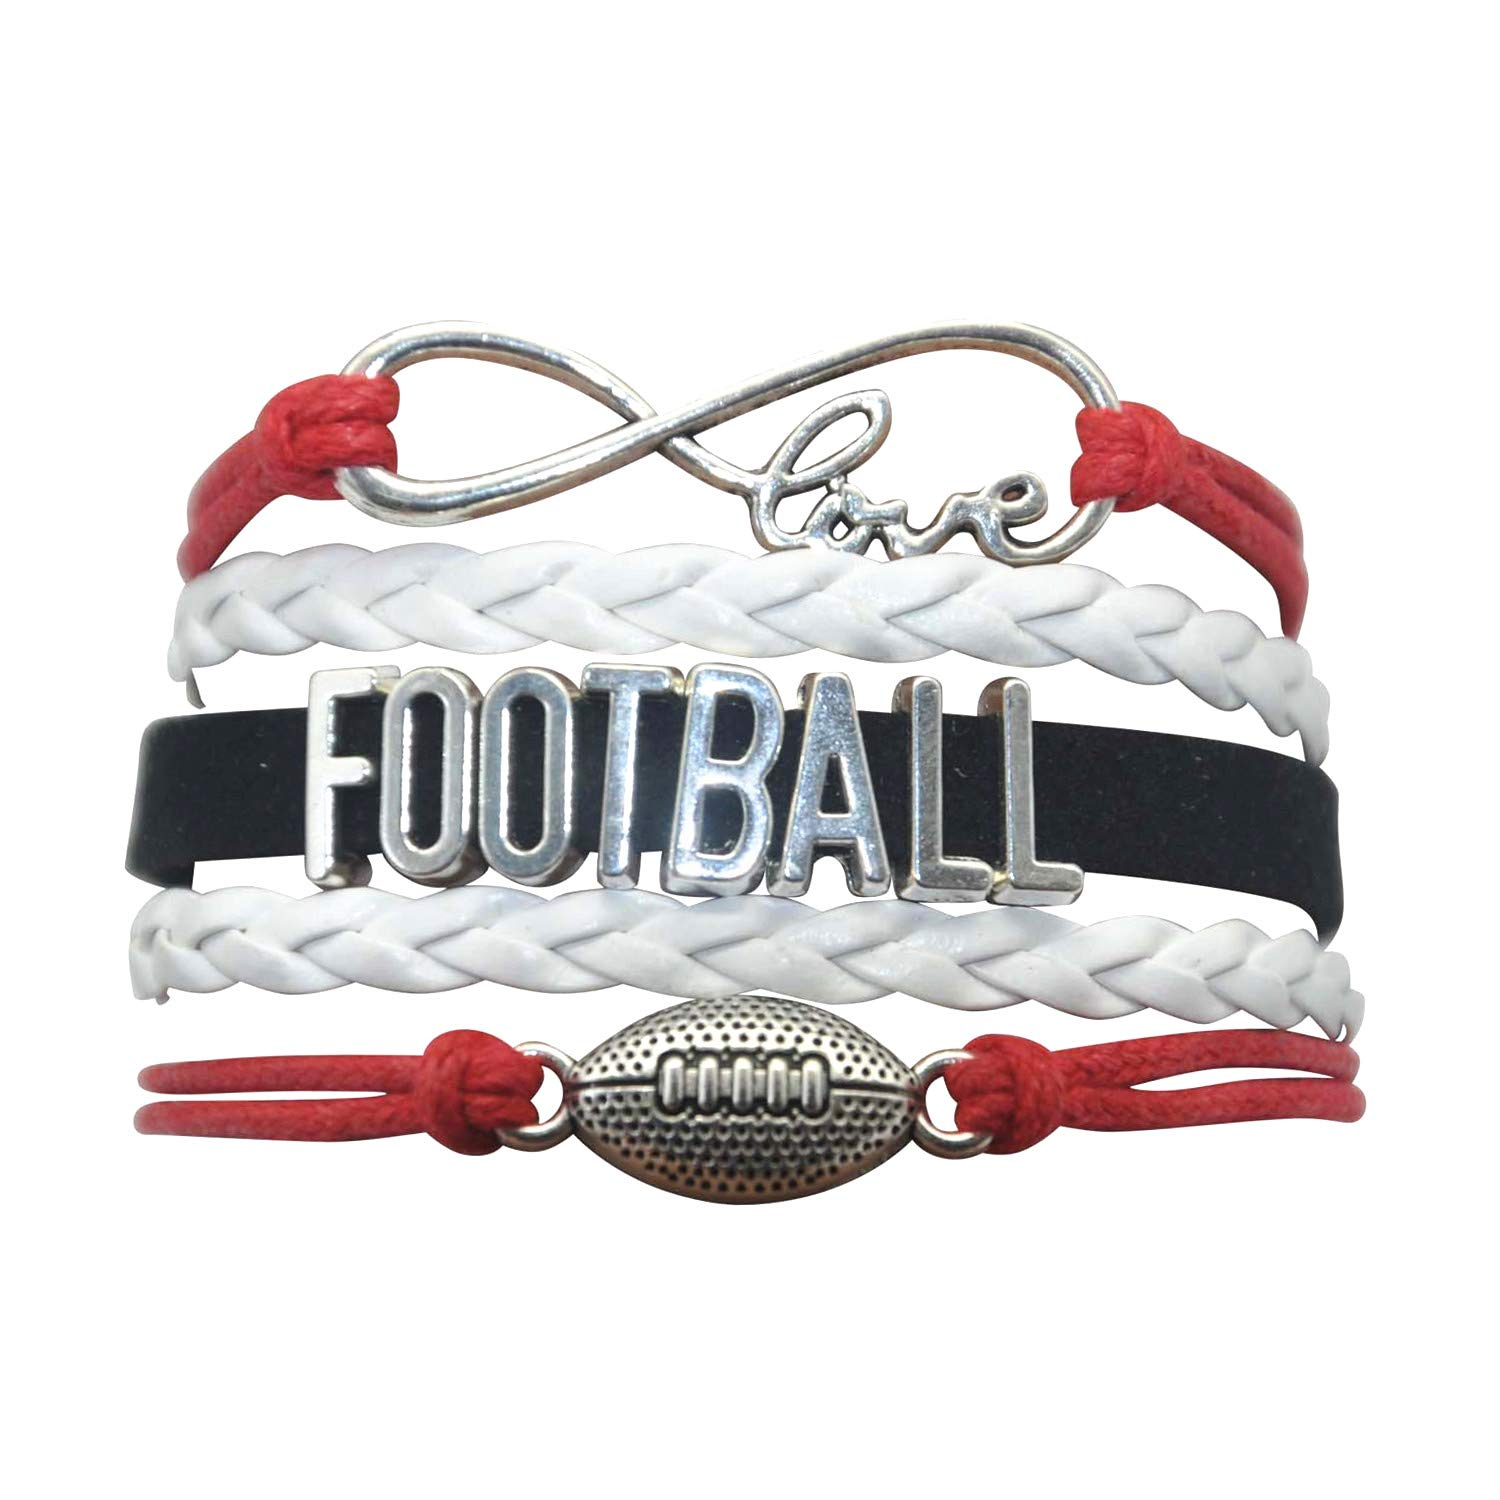 Football Lovers Football Gifts Football Charm Bracelet Youth Football Bracelets for Women,Men,Girls,Boys HHHbeauty Football Bracelet Jewelry Football Team Football Themed Gifts